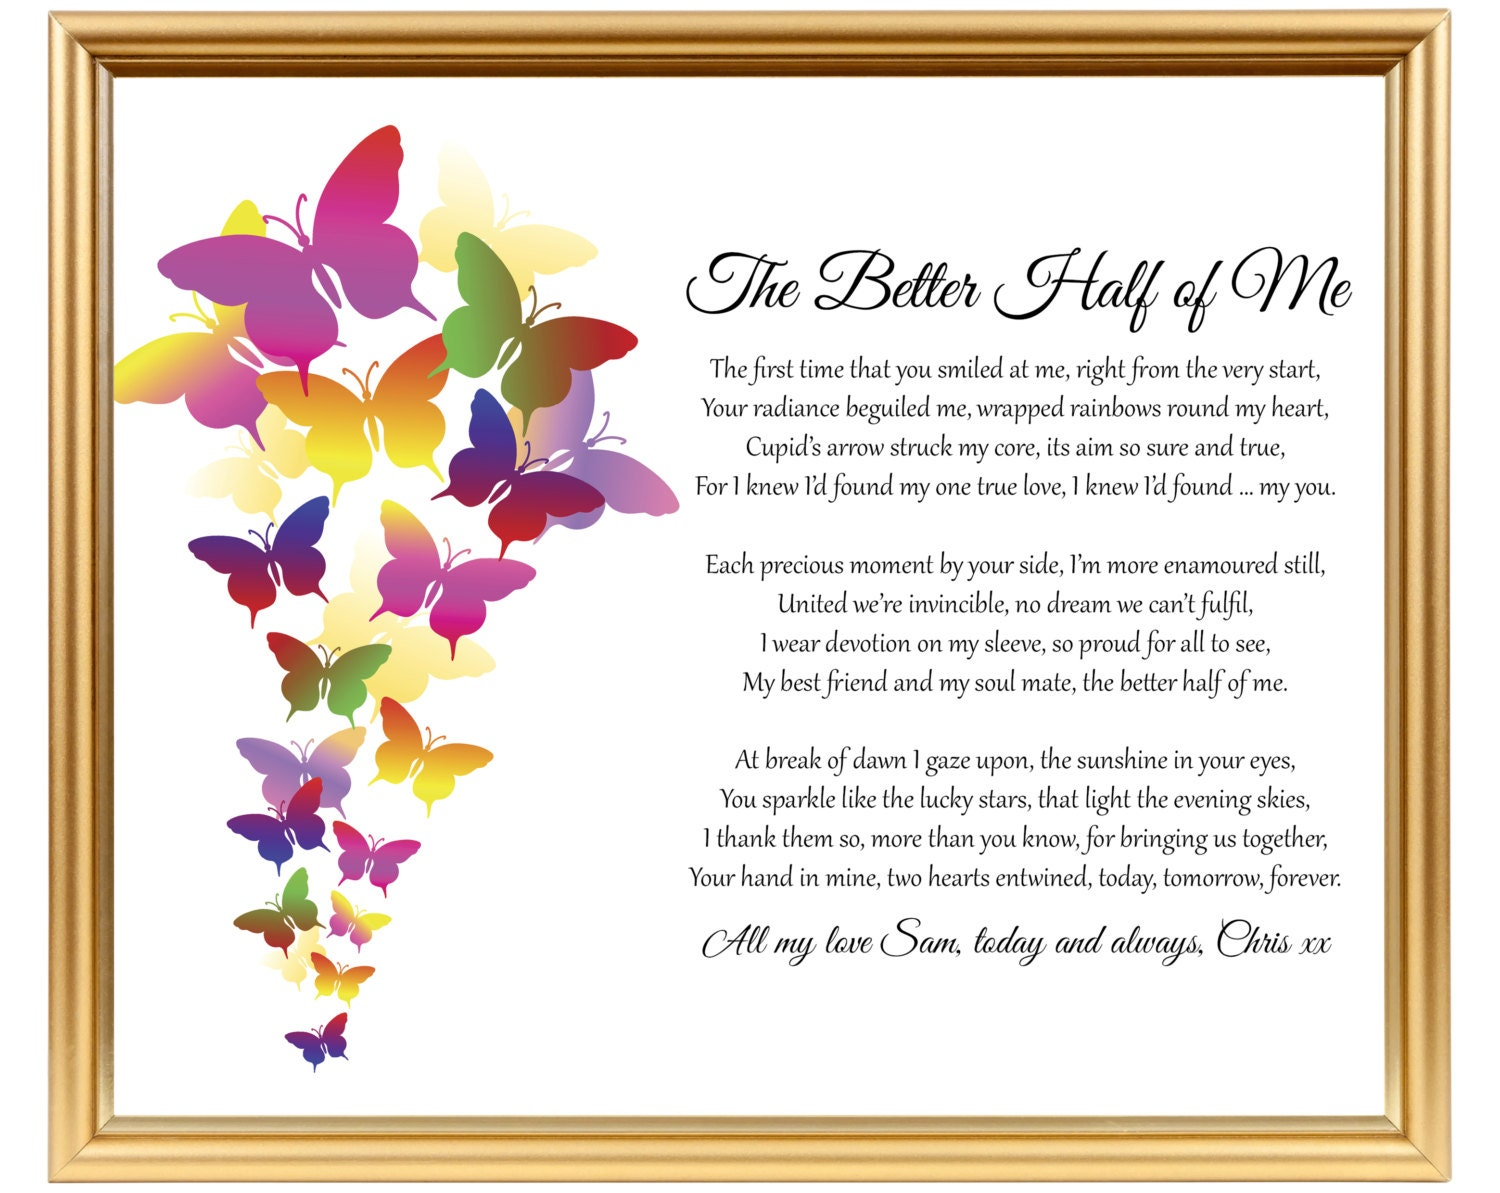 Wedding Gift For Your Wife: Gift For Wedding Anniversary Poem For Him Her For Wife For